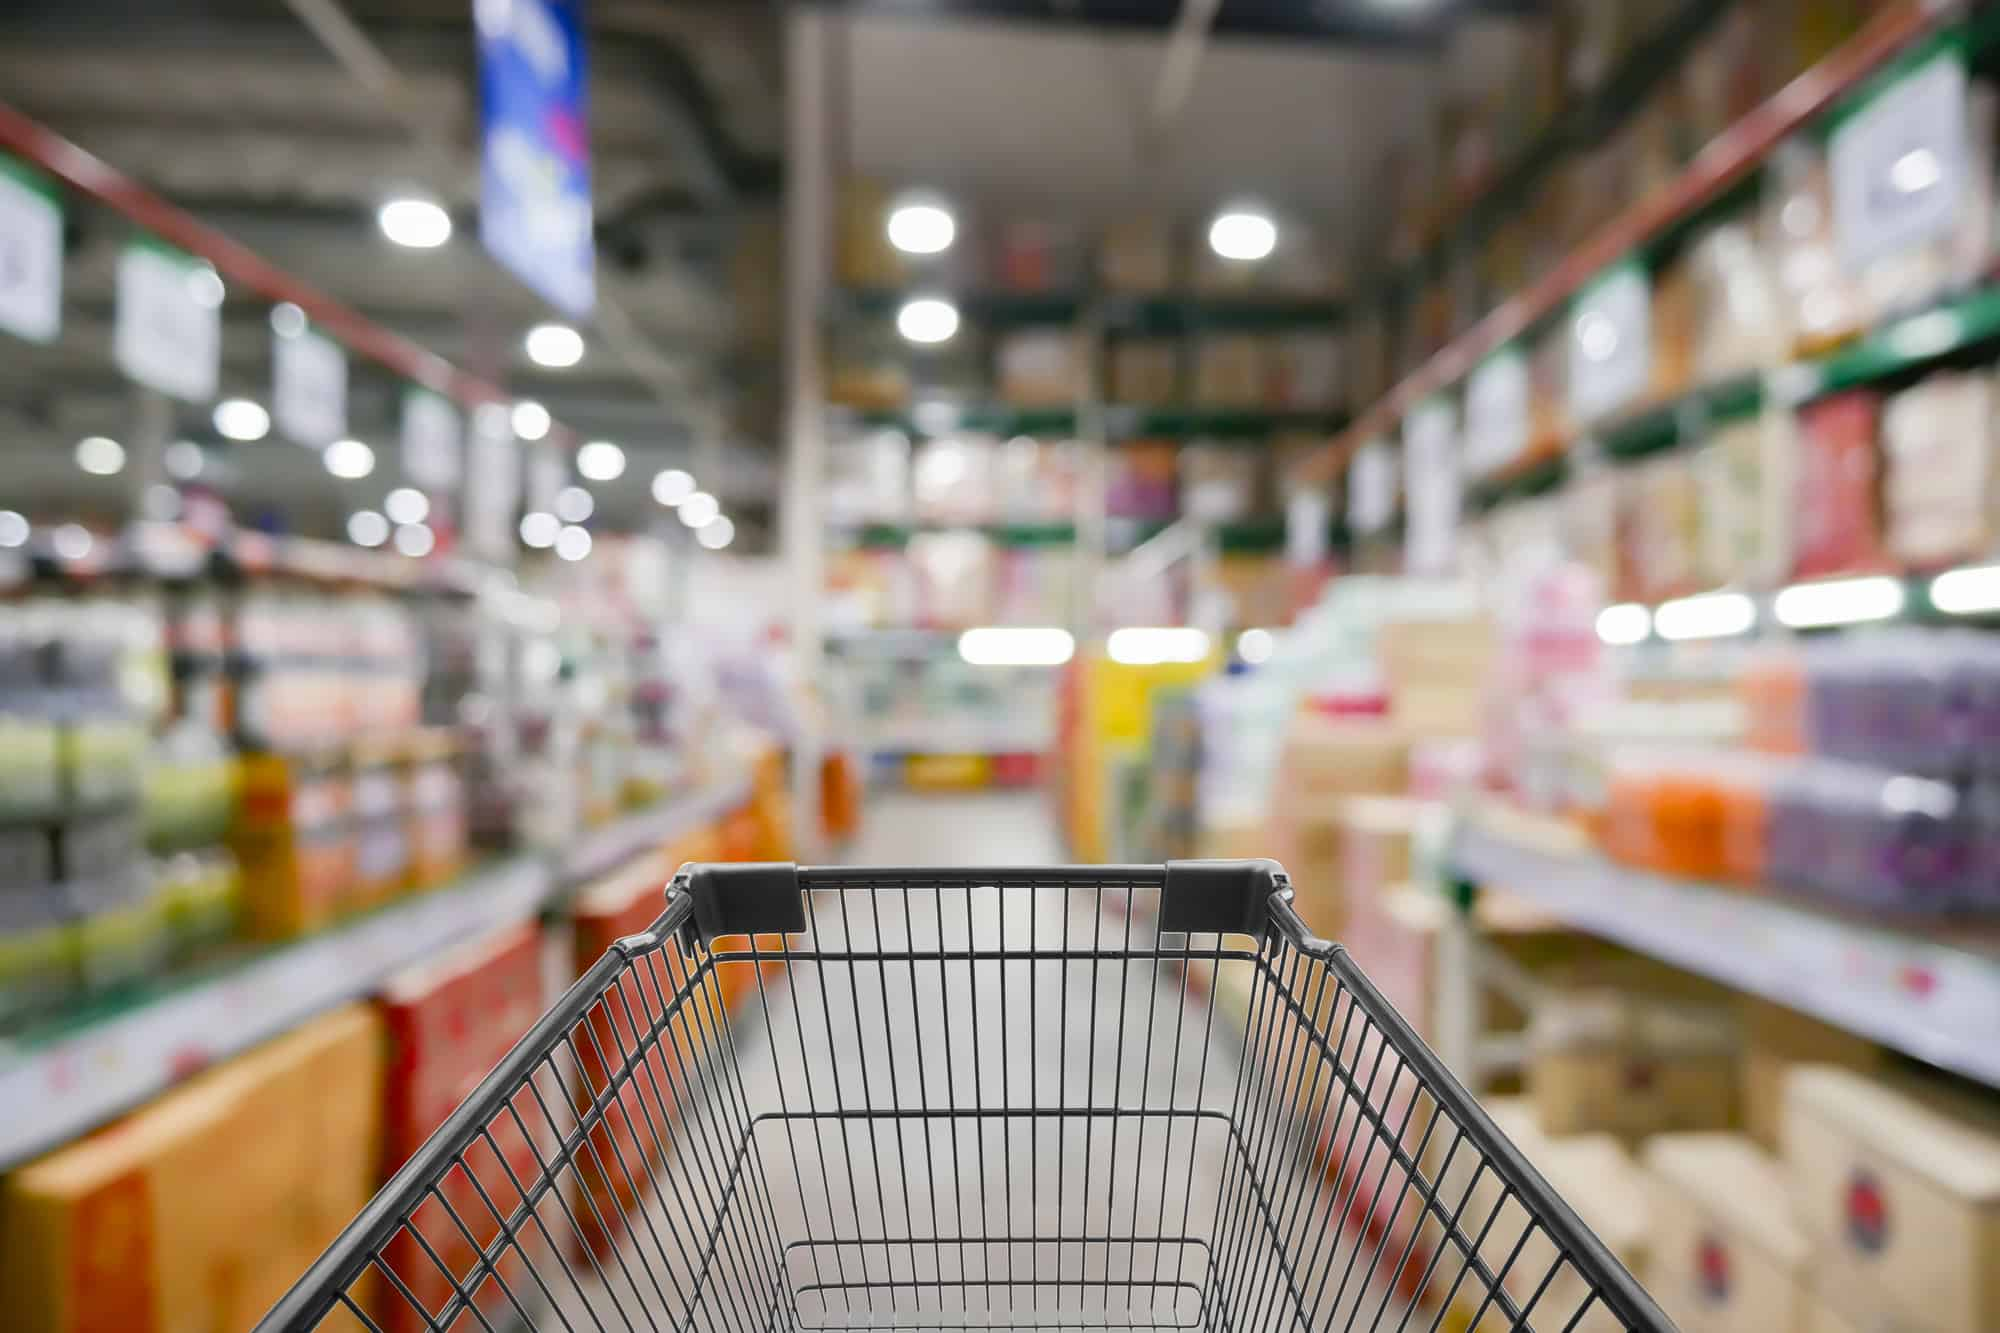 Why are people stockpiling? The psychology behind panic buying